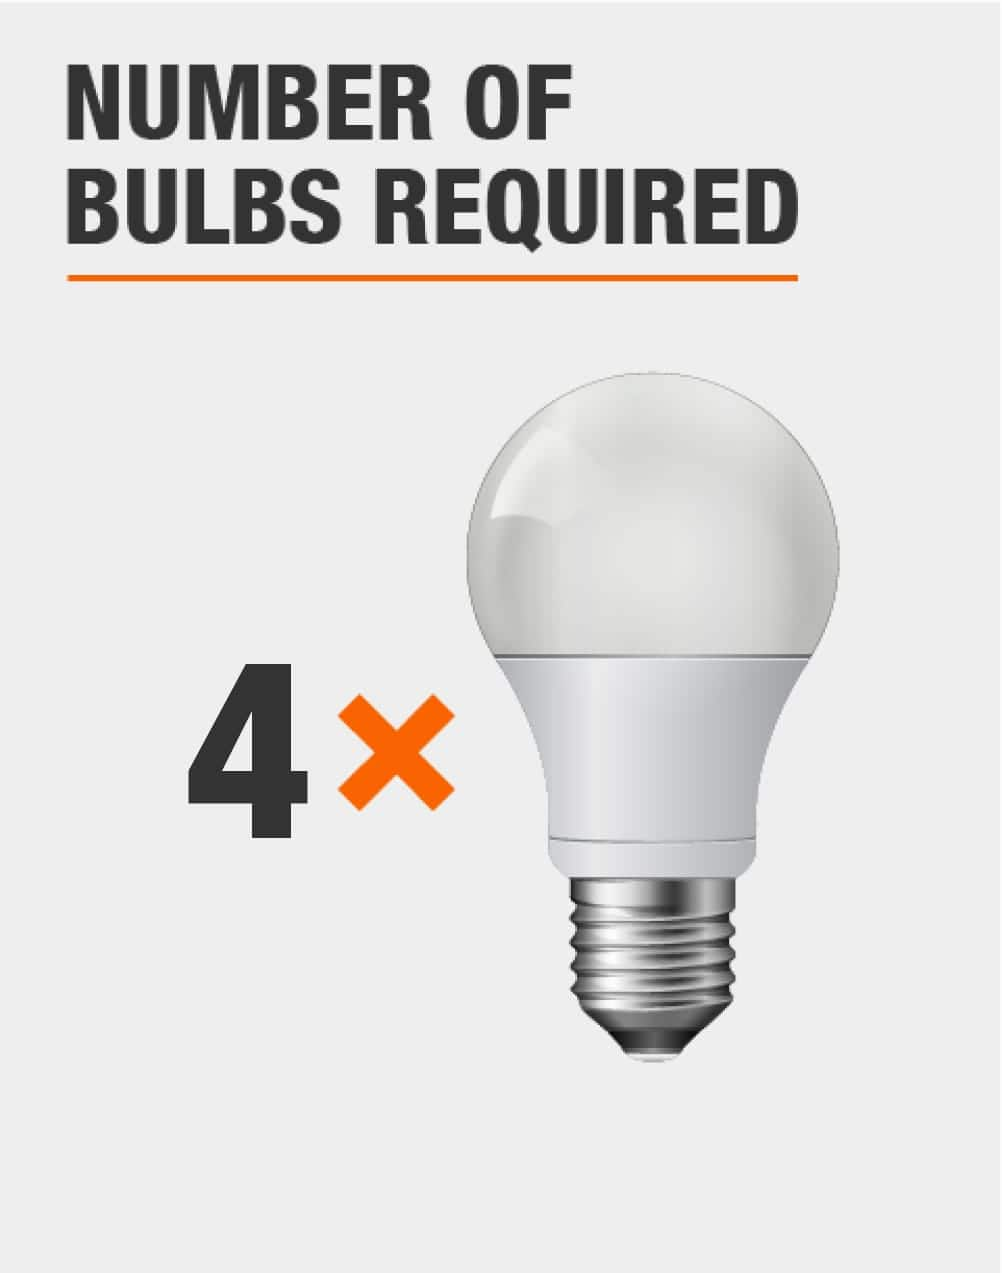 number of bulbs required is 4